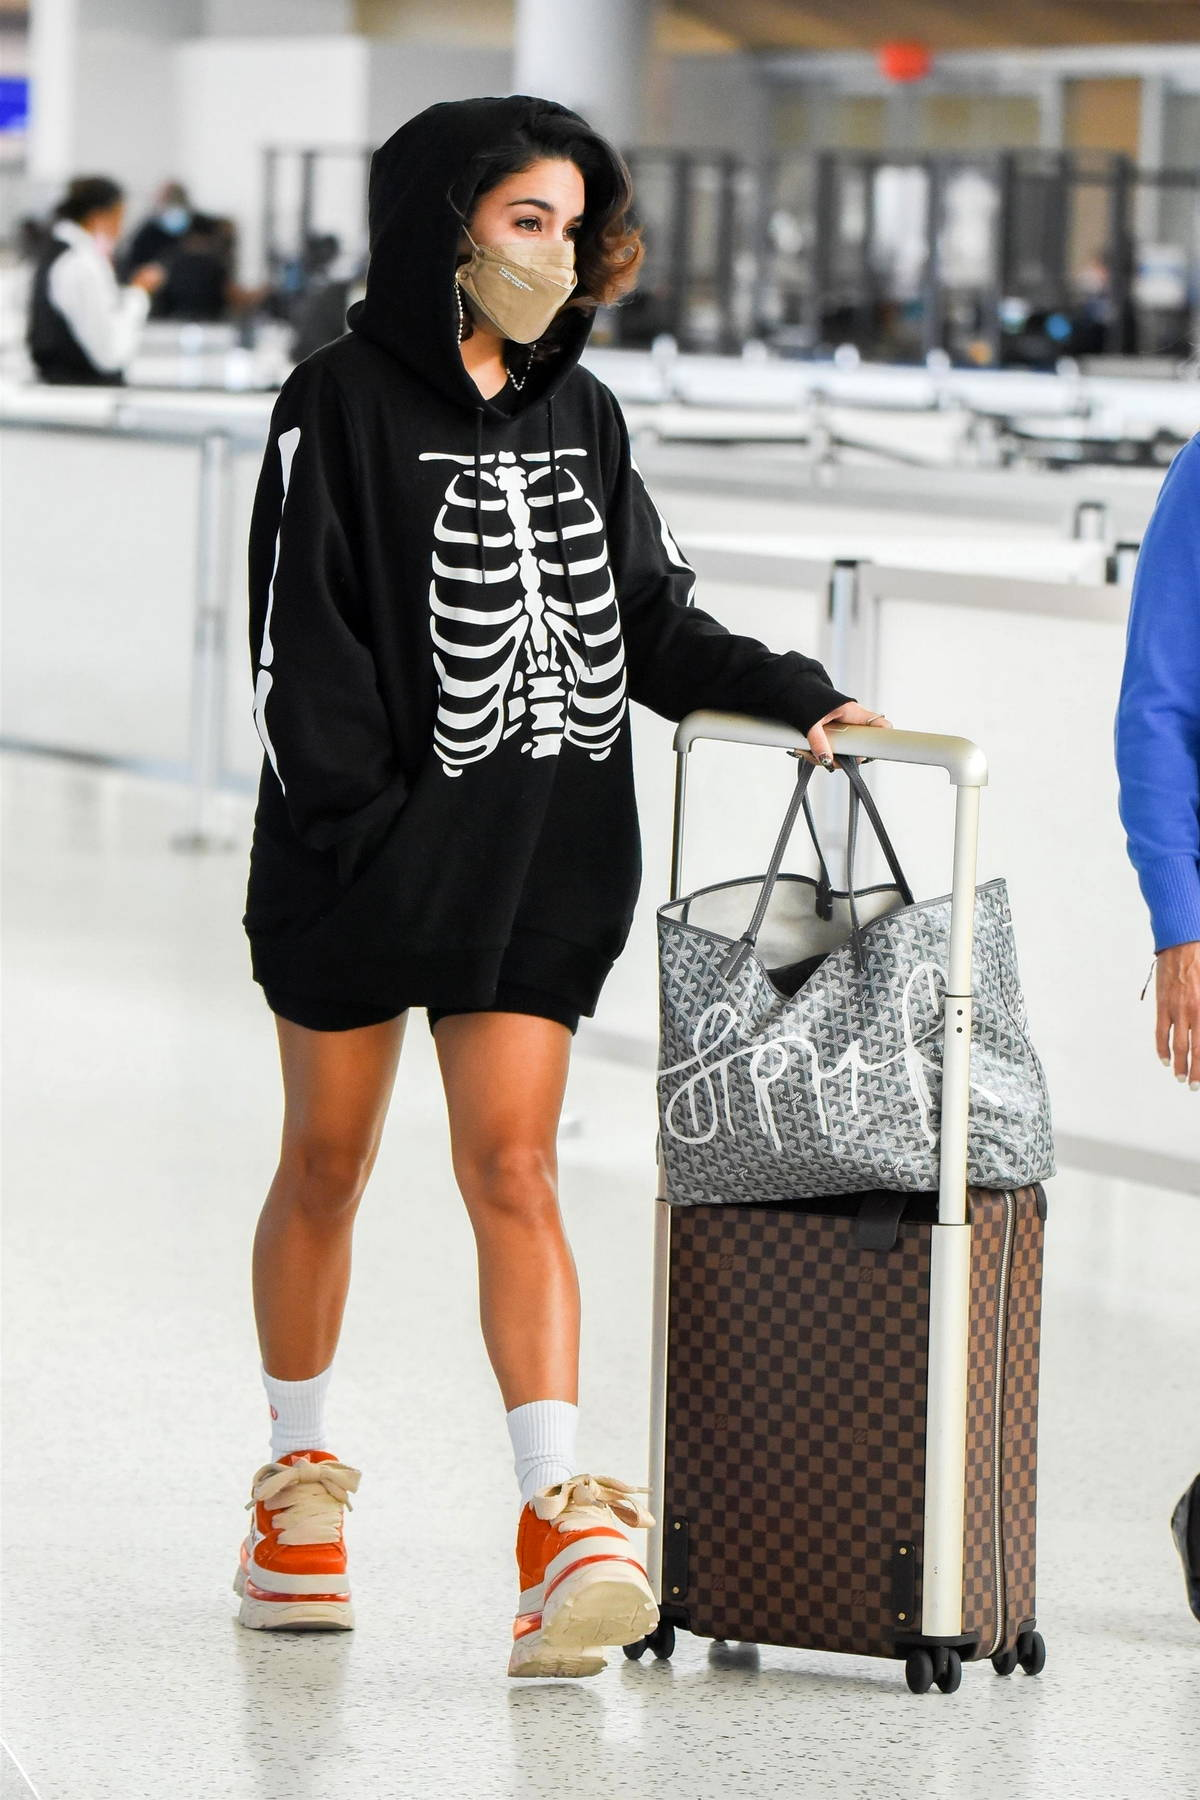 Vanessa Hudgens wears a skeleton print hoodie with legging shorts as she arrives at the JFK Airport in New York City